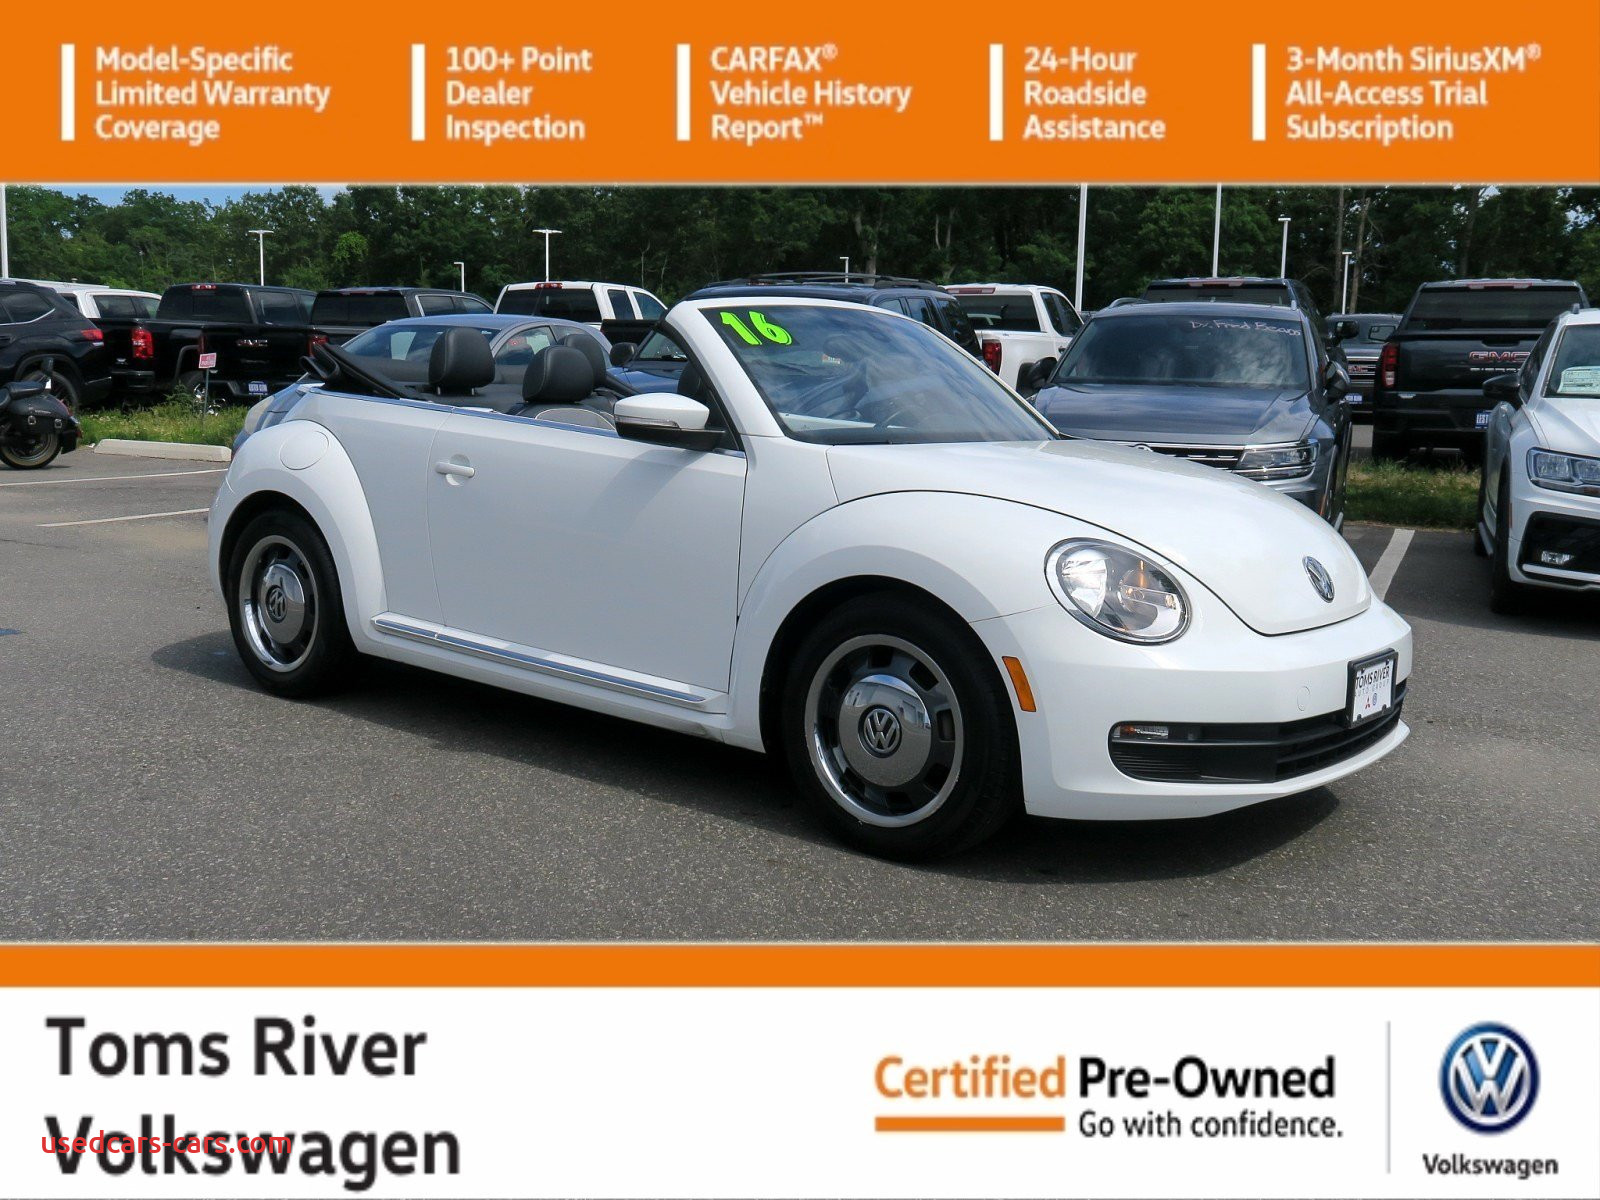 Volkswagen Beetle Accessories Fresh Certified Pre Owned 2016 Volkswagen Beetle Convertible 1 8t Denim Fwd Convertible